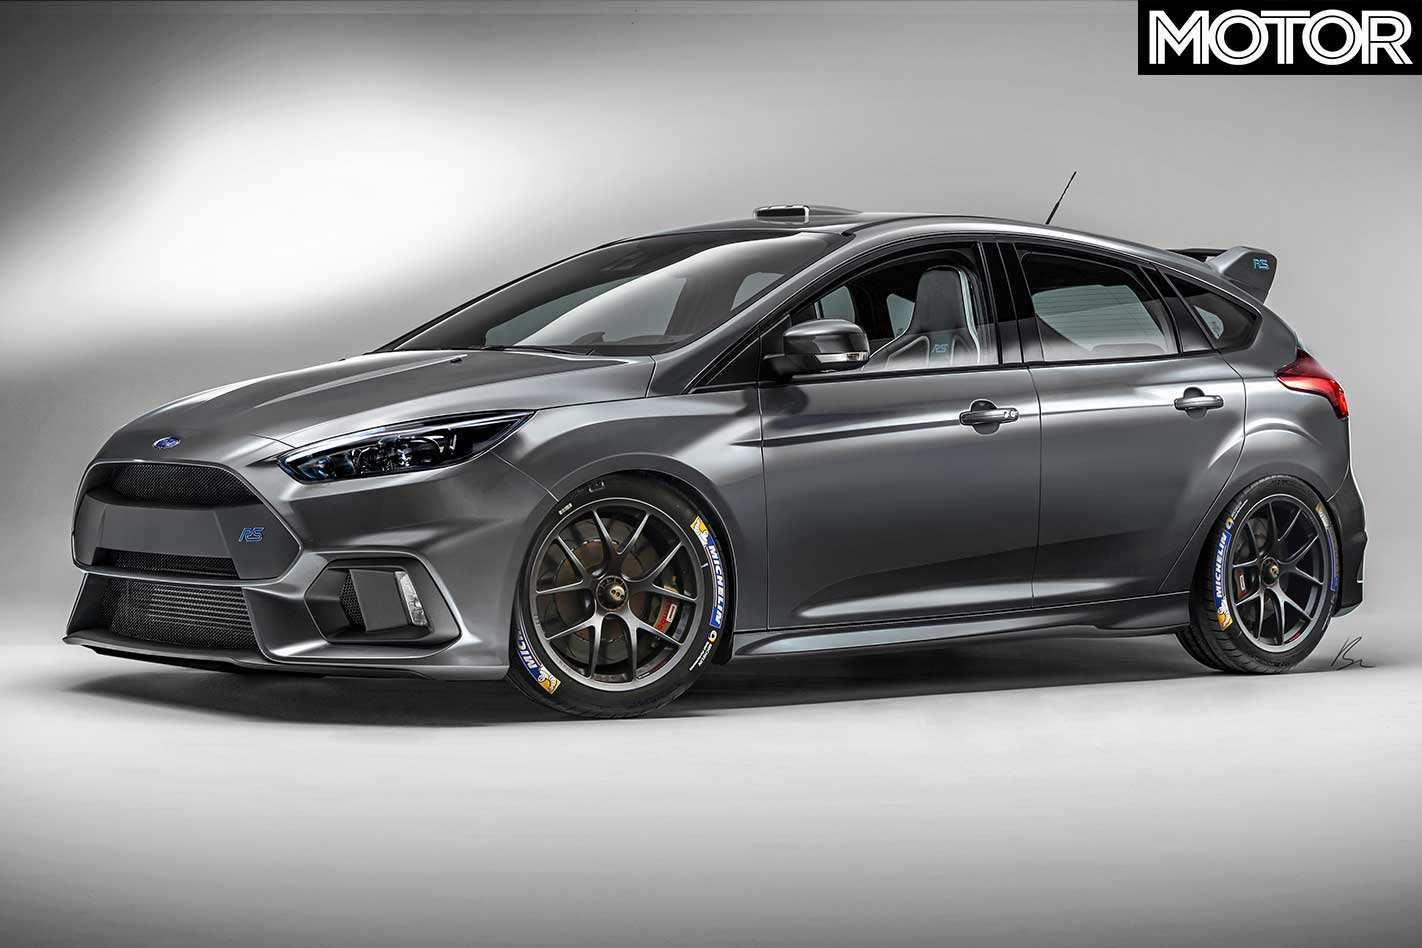 45 New Ford Focus Rs 2020 Performance